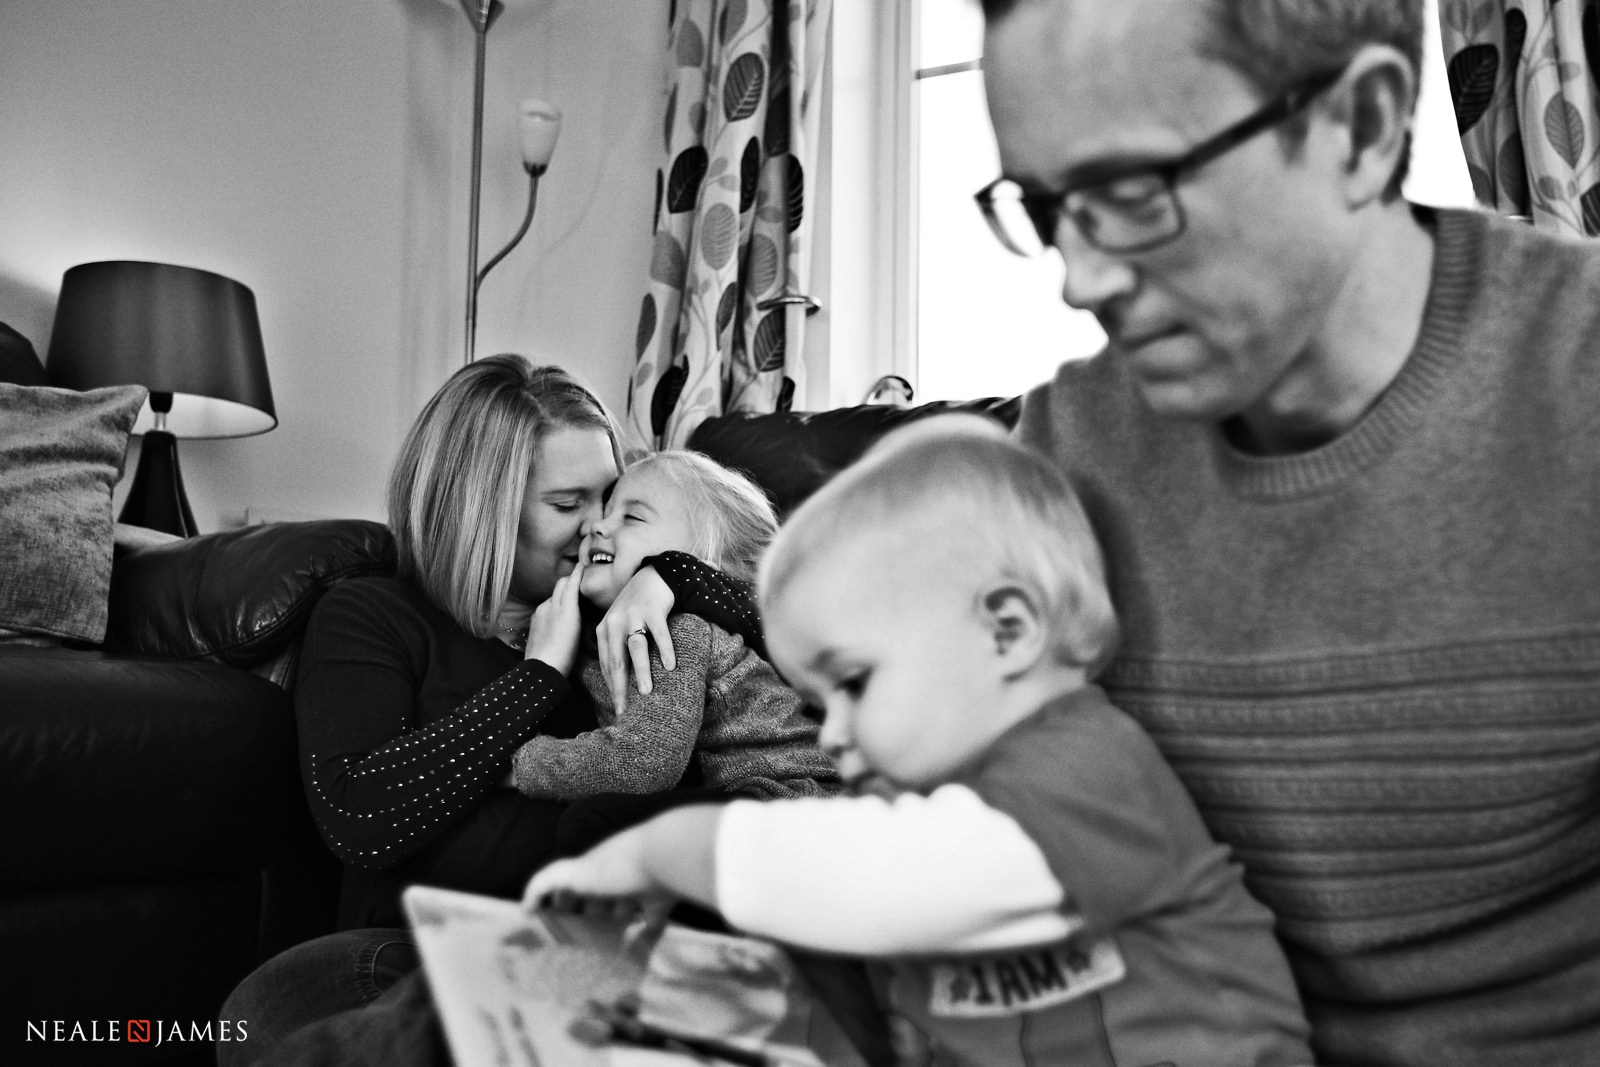 A Mum and her child cuddle in the background while a father and son read together in the foreground of this family photograph